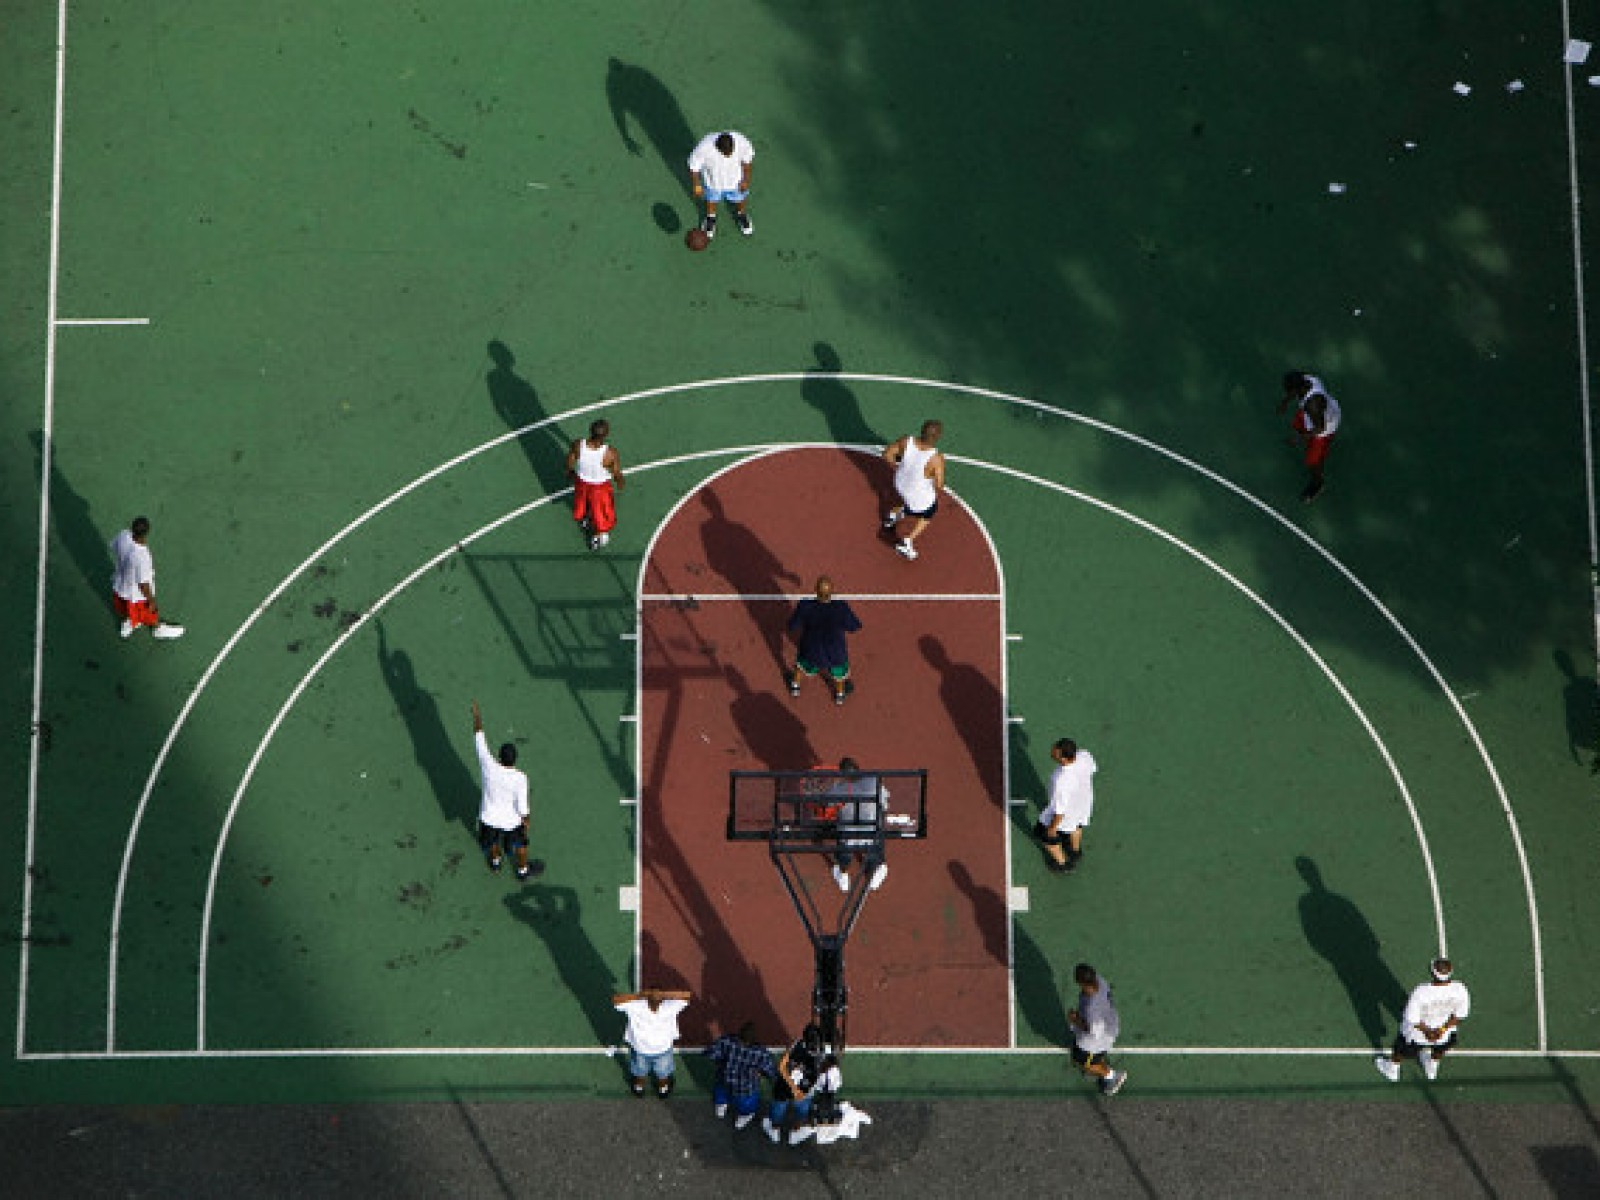 Rucker Park, New York City, NY, United States